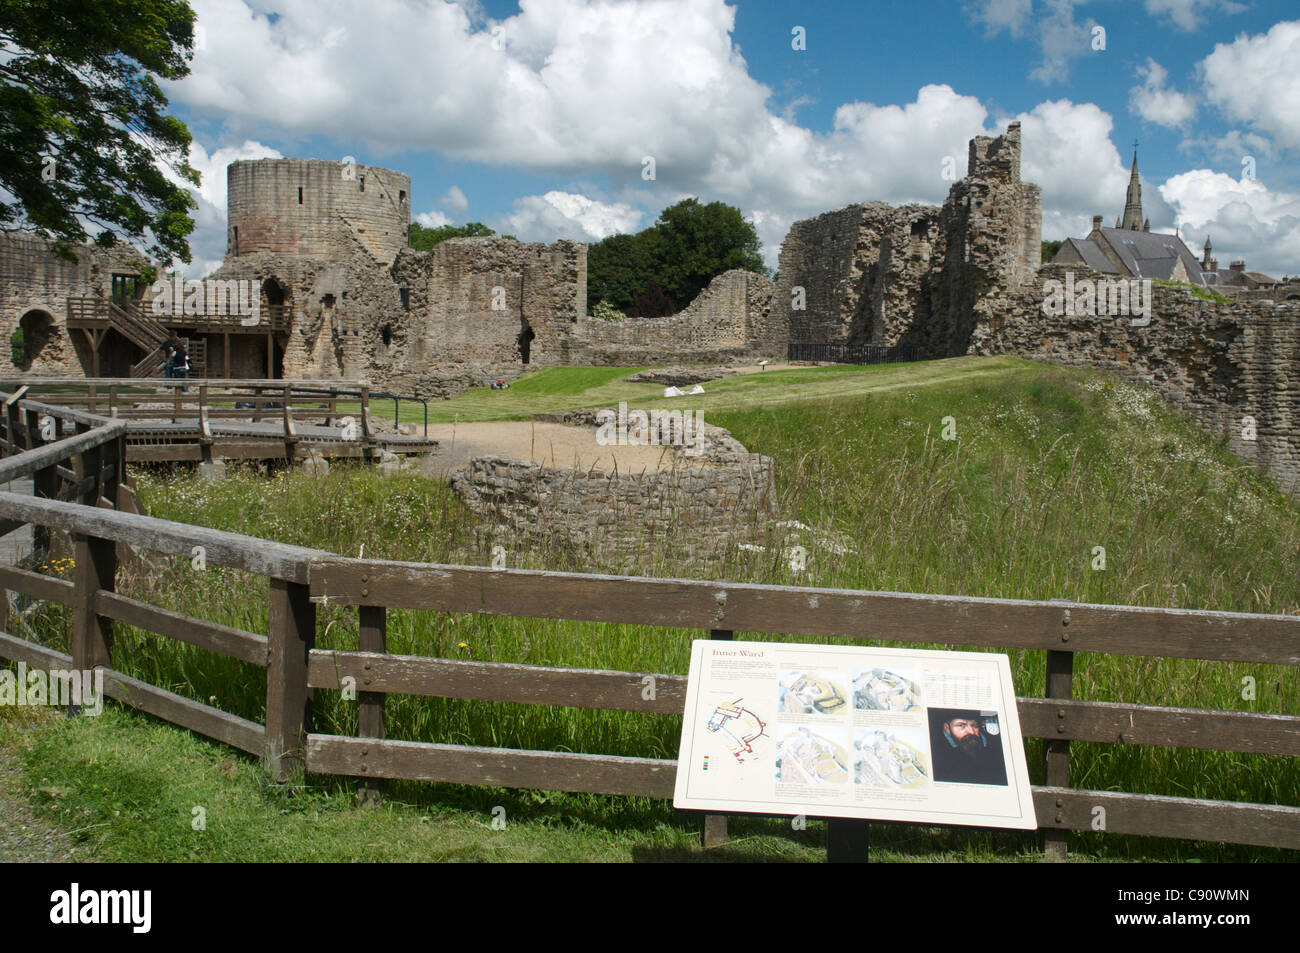 Barnard Castle is a historic castle on the cliff above the river Tees at a vital strategic point at a river crossing - Stock Image